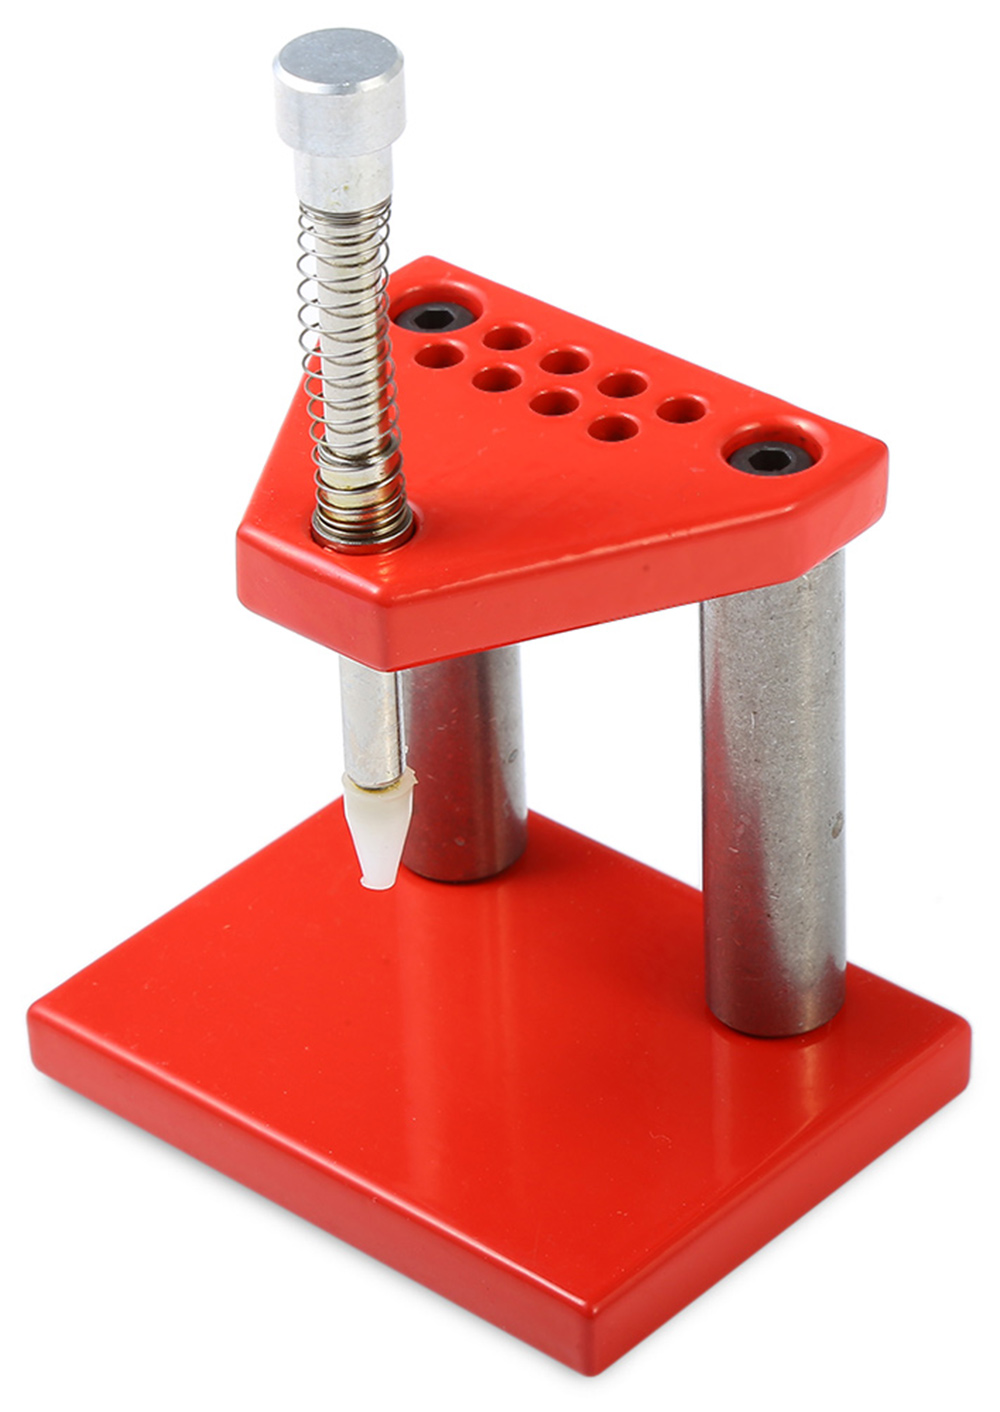 Watch Hand Lifter Remover Clamp Spring Presser